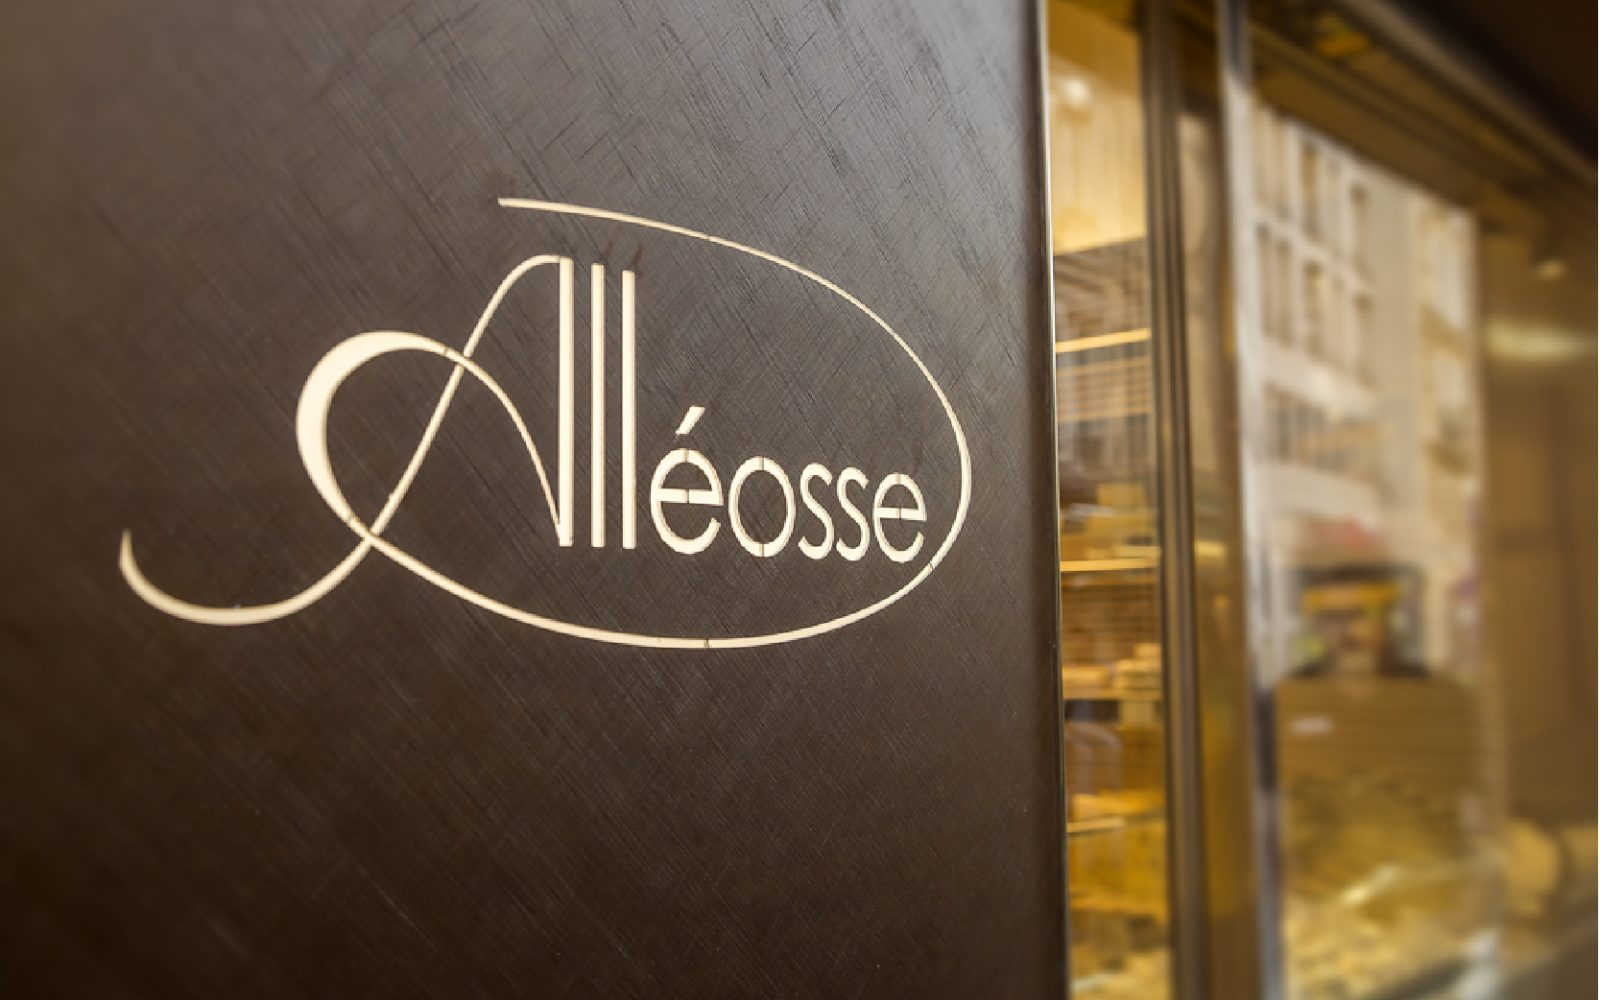 Re-launch of the Fromagerie Alléosse